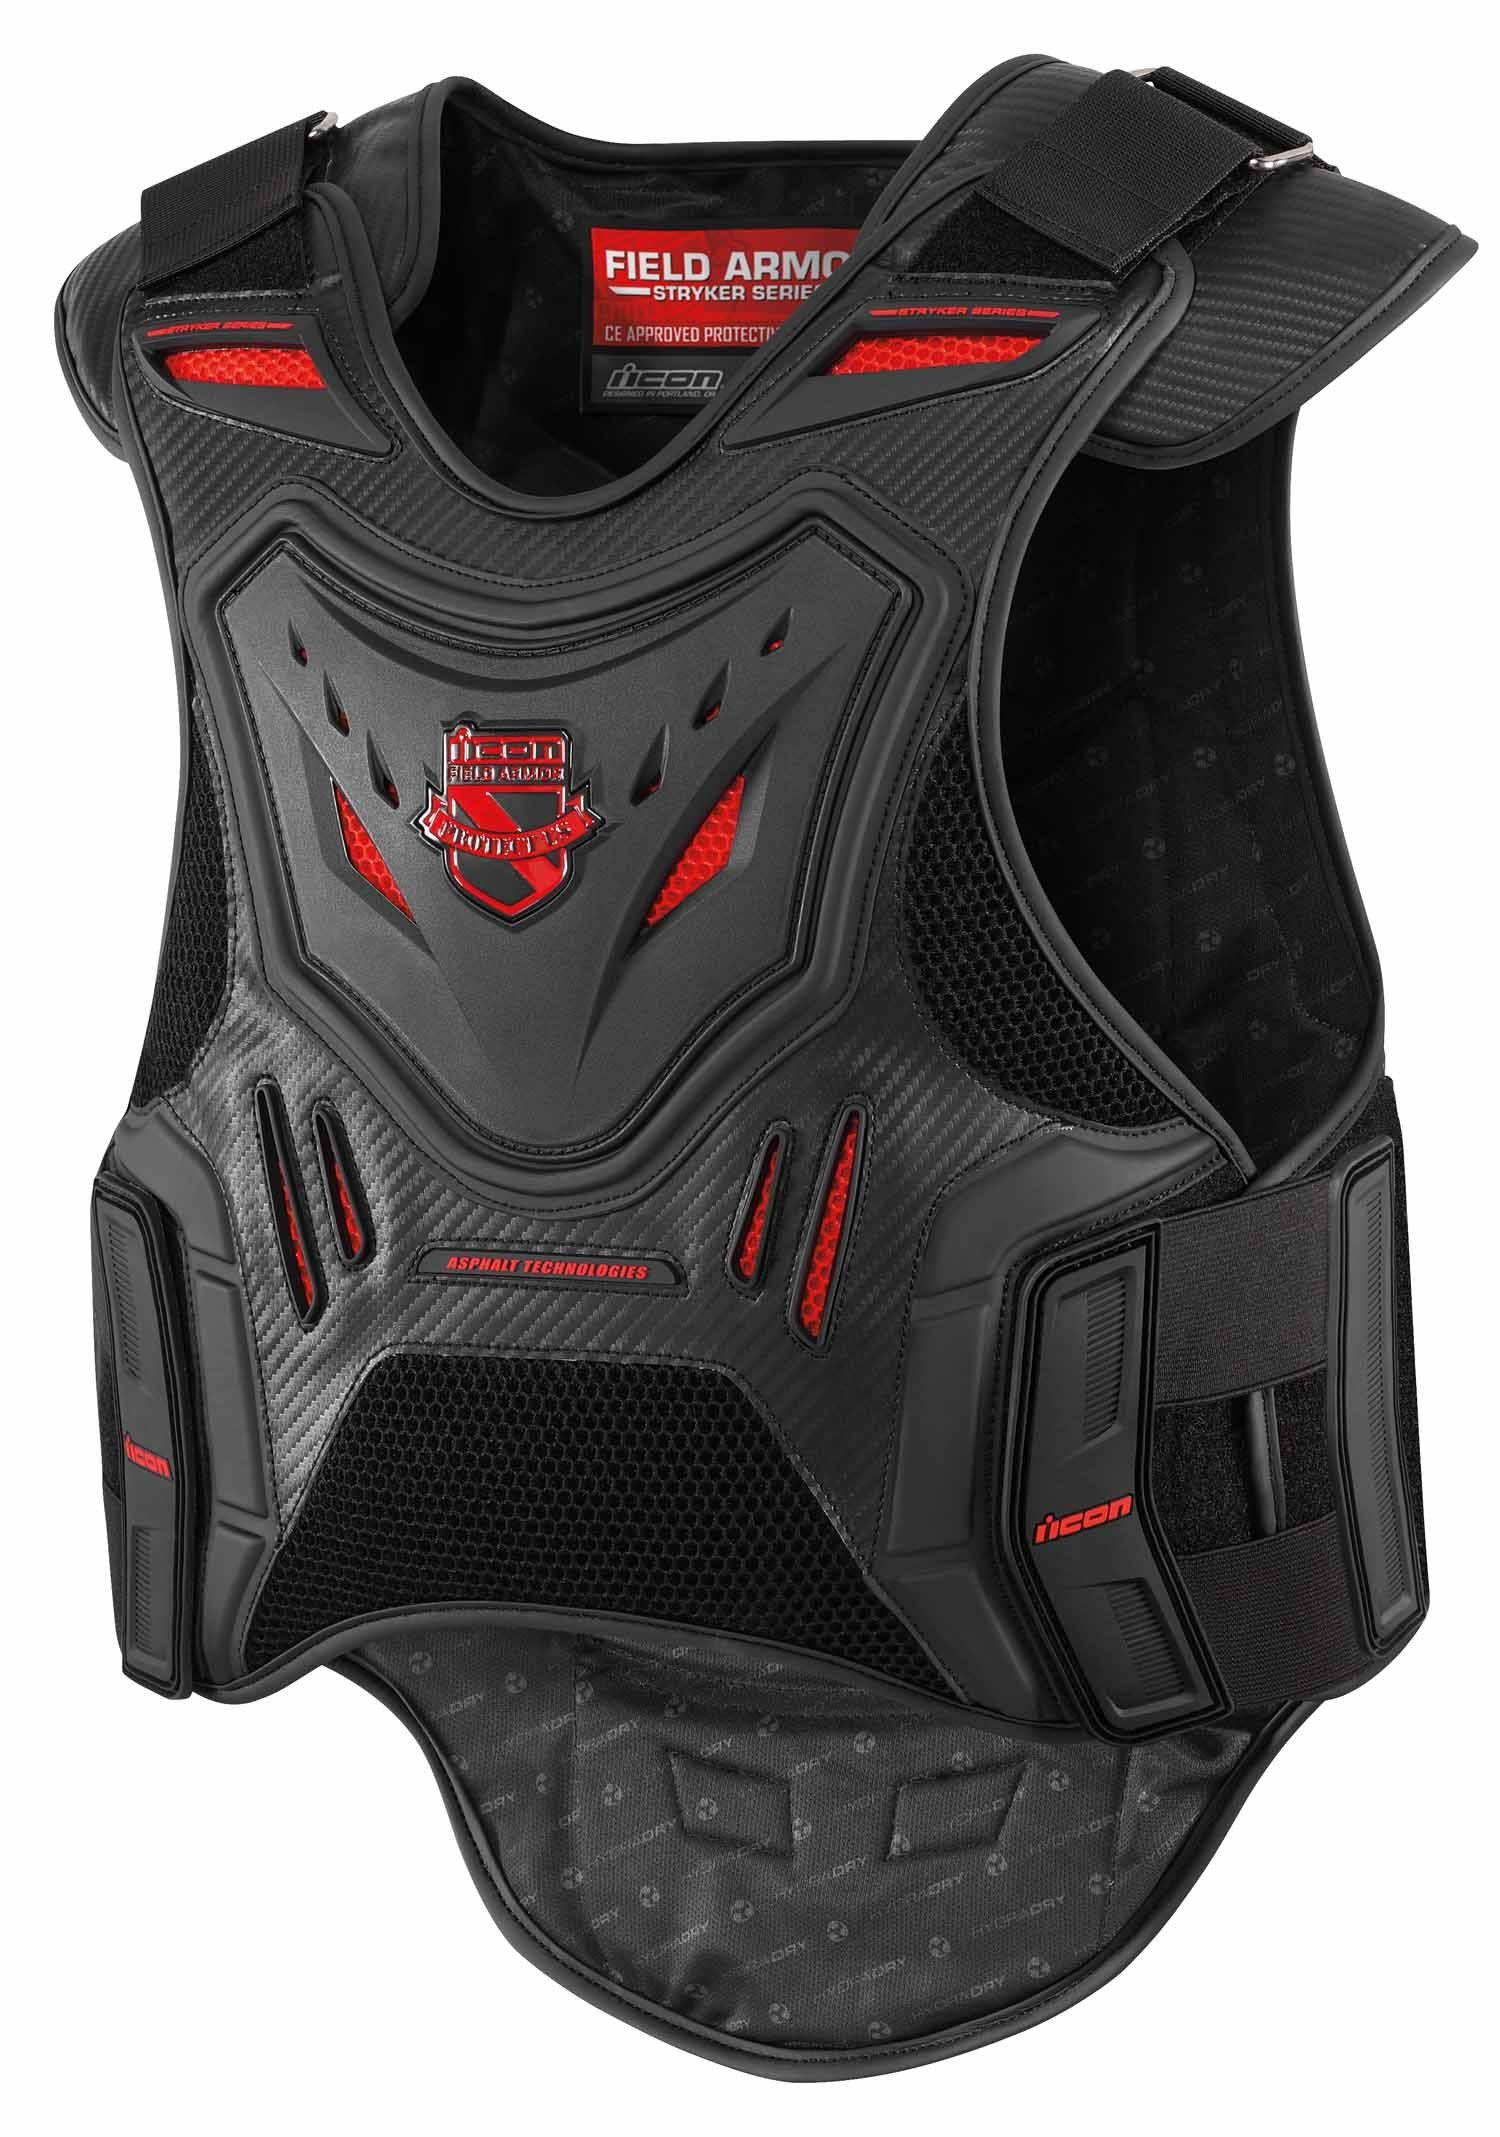 ICON FIELD ARMOR STRYKER VEST BLACK (Small / Medium 2701